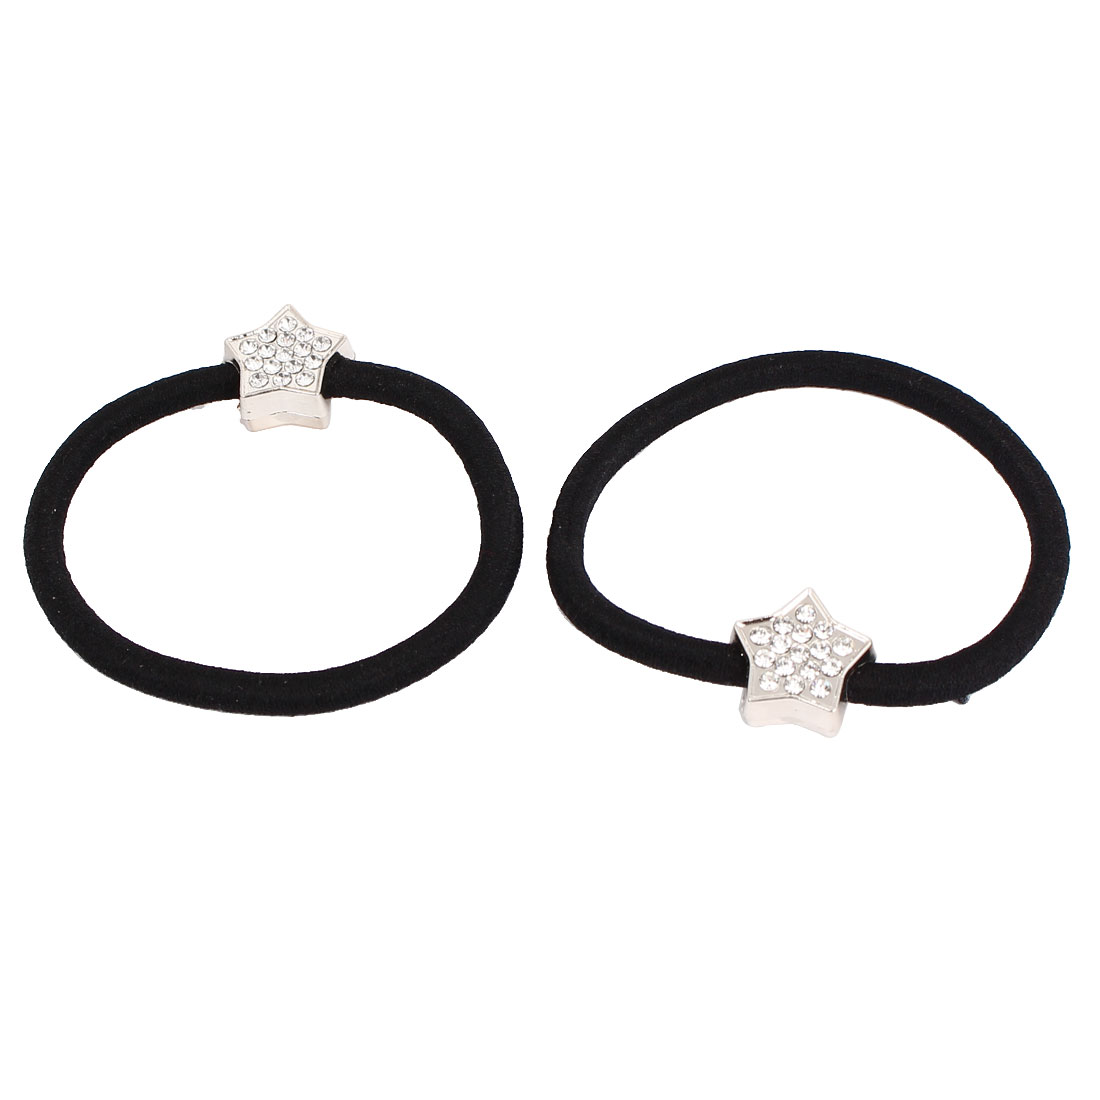 Metal Star Decor Women Elastic Hair Ring Rope Band Ponytail Holder Black 2Pcs